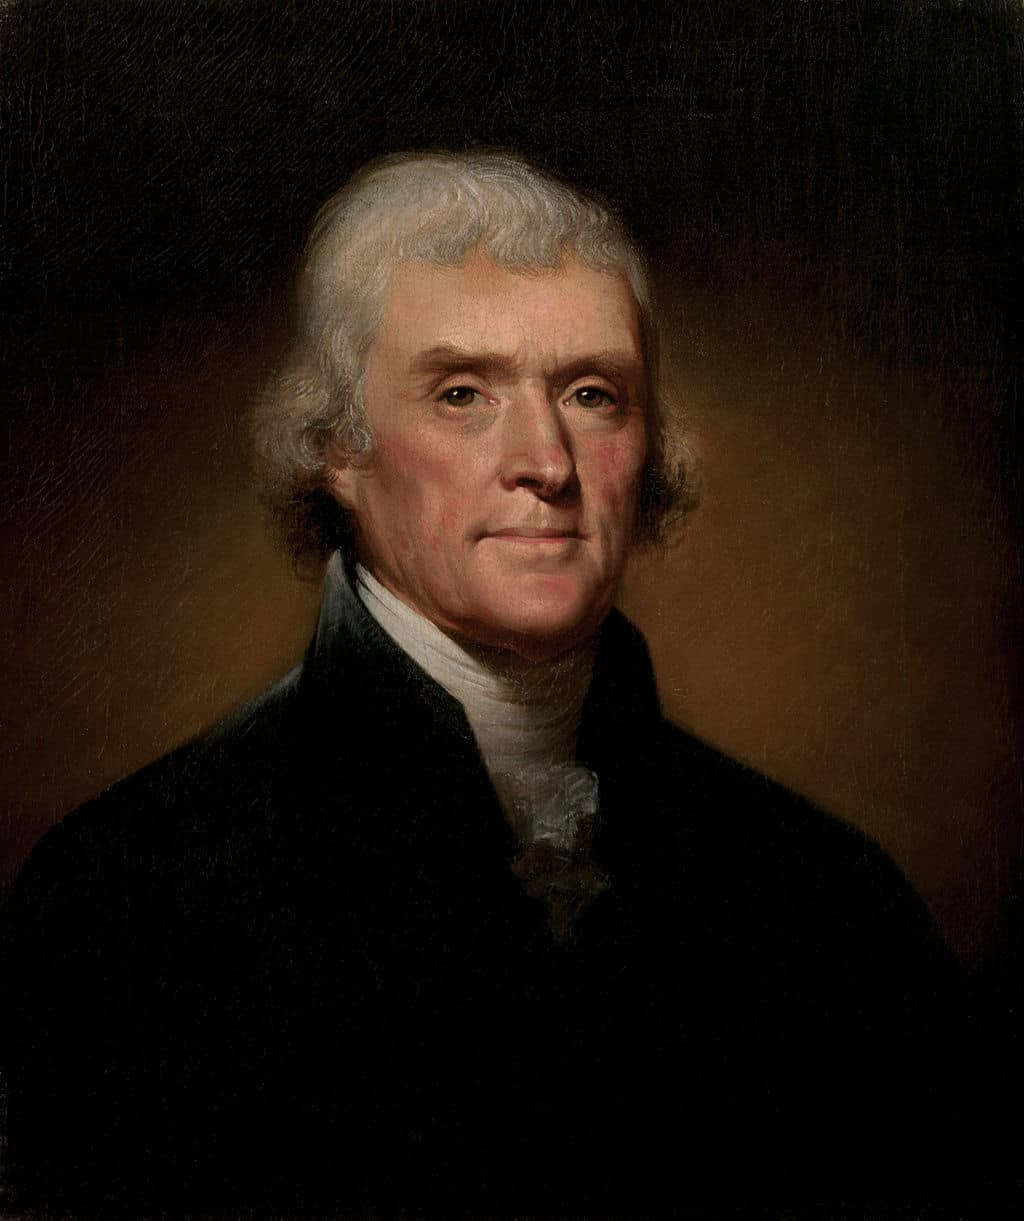 1024px-Official_Presidential_portrait_of_Thomas_Jefferson_(by_Rembrandt_Peale,_1800)